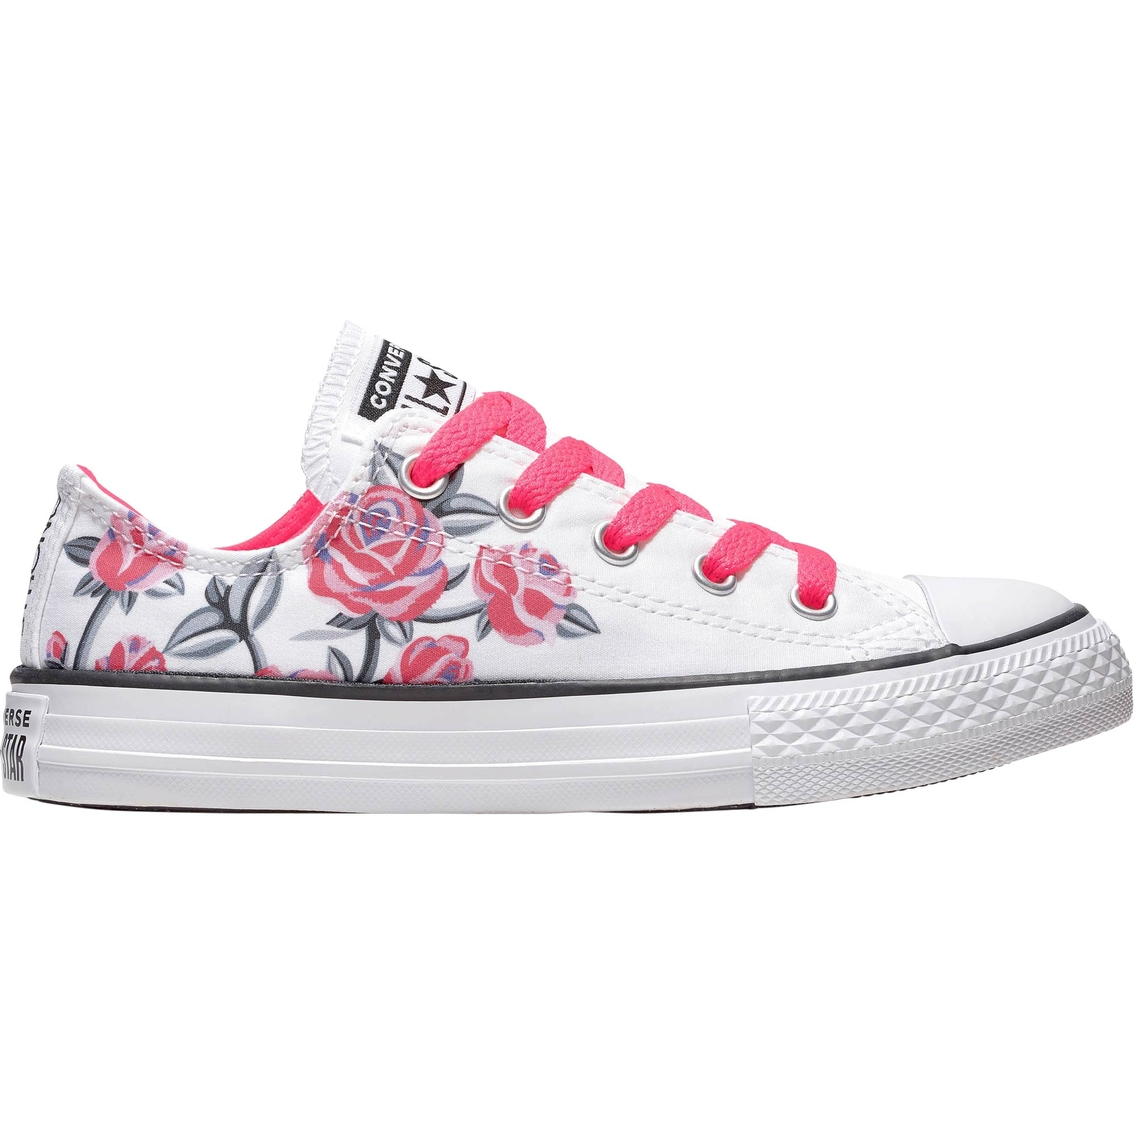 98a3d0346f19 Converse Girls Chuck Taylor All Star Oxford Sneakers